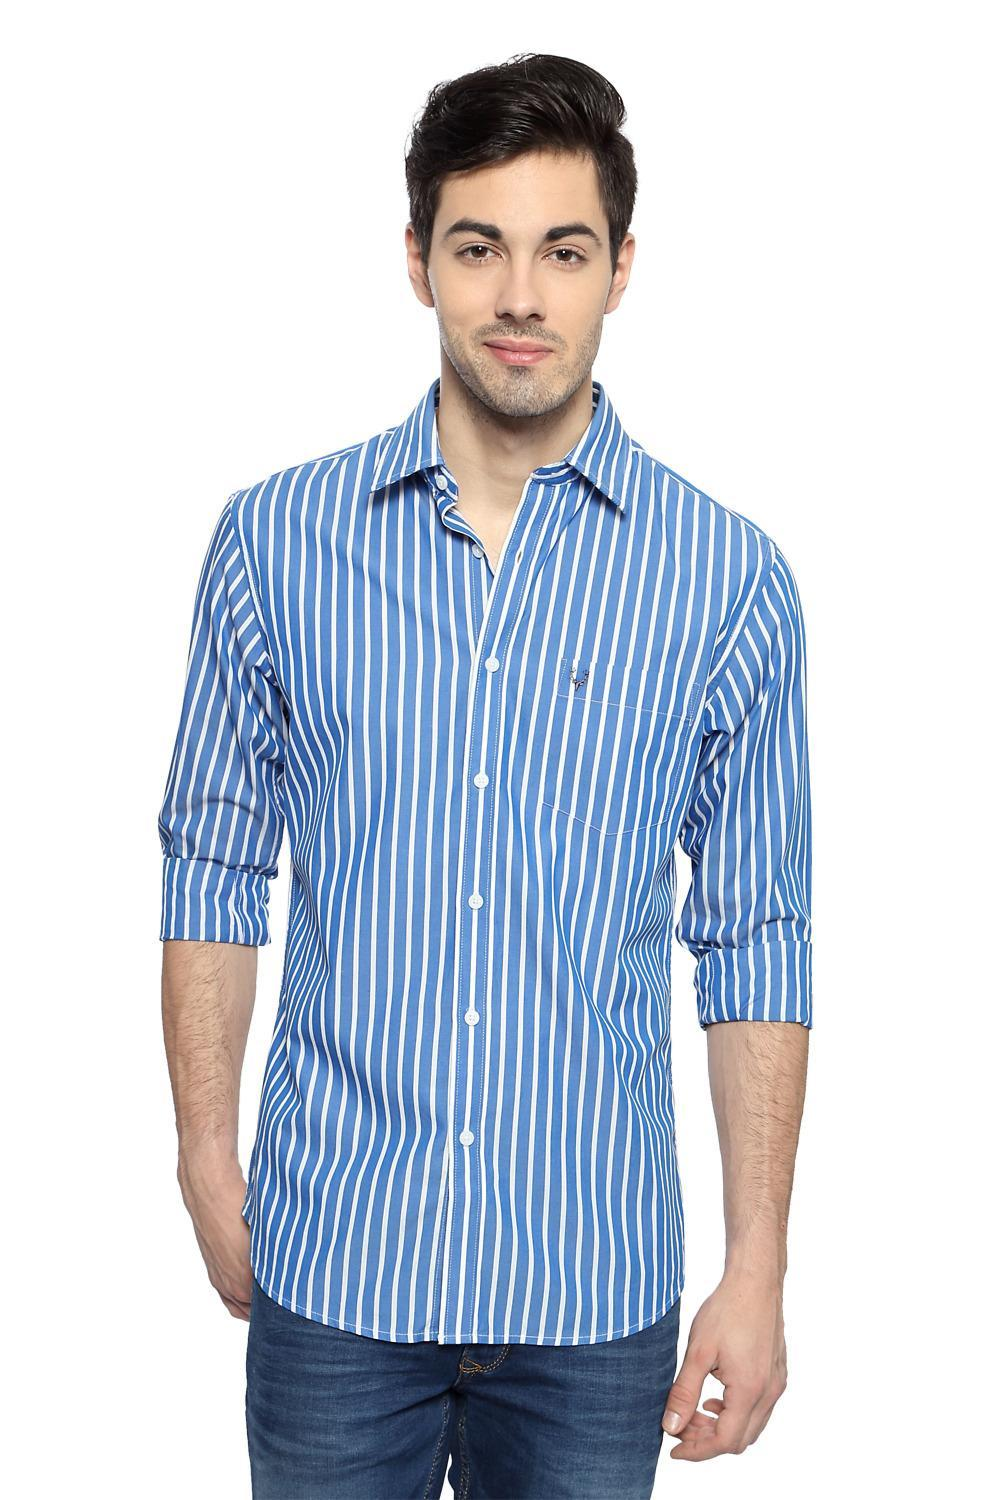 daa2997c61 Allen Solly Shirts, Blue Striped Semi Formal Shirt for Men at Allensolly.com